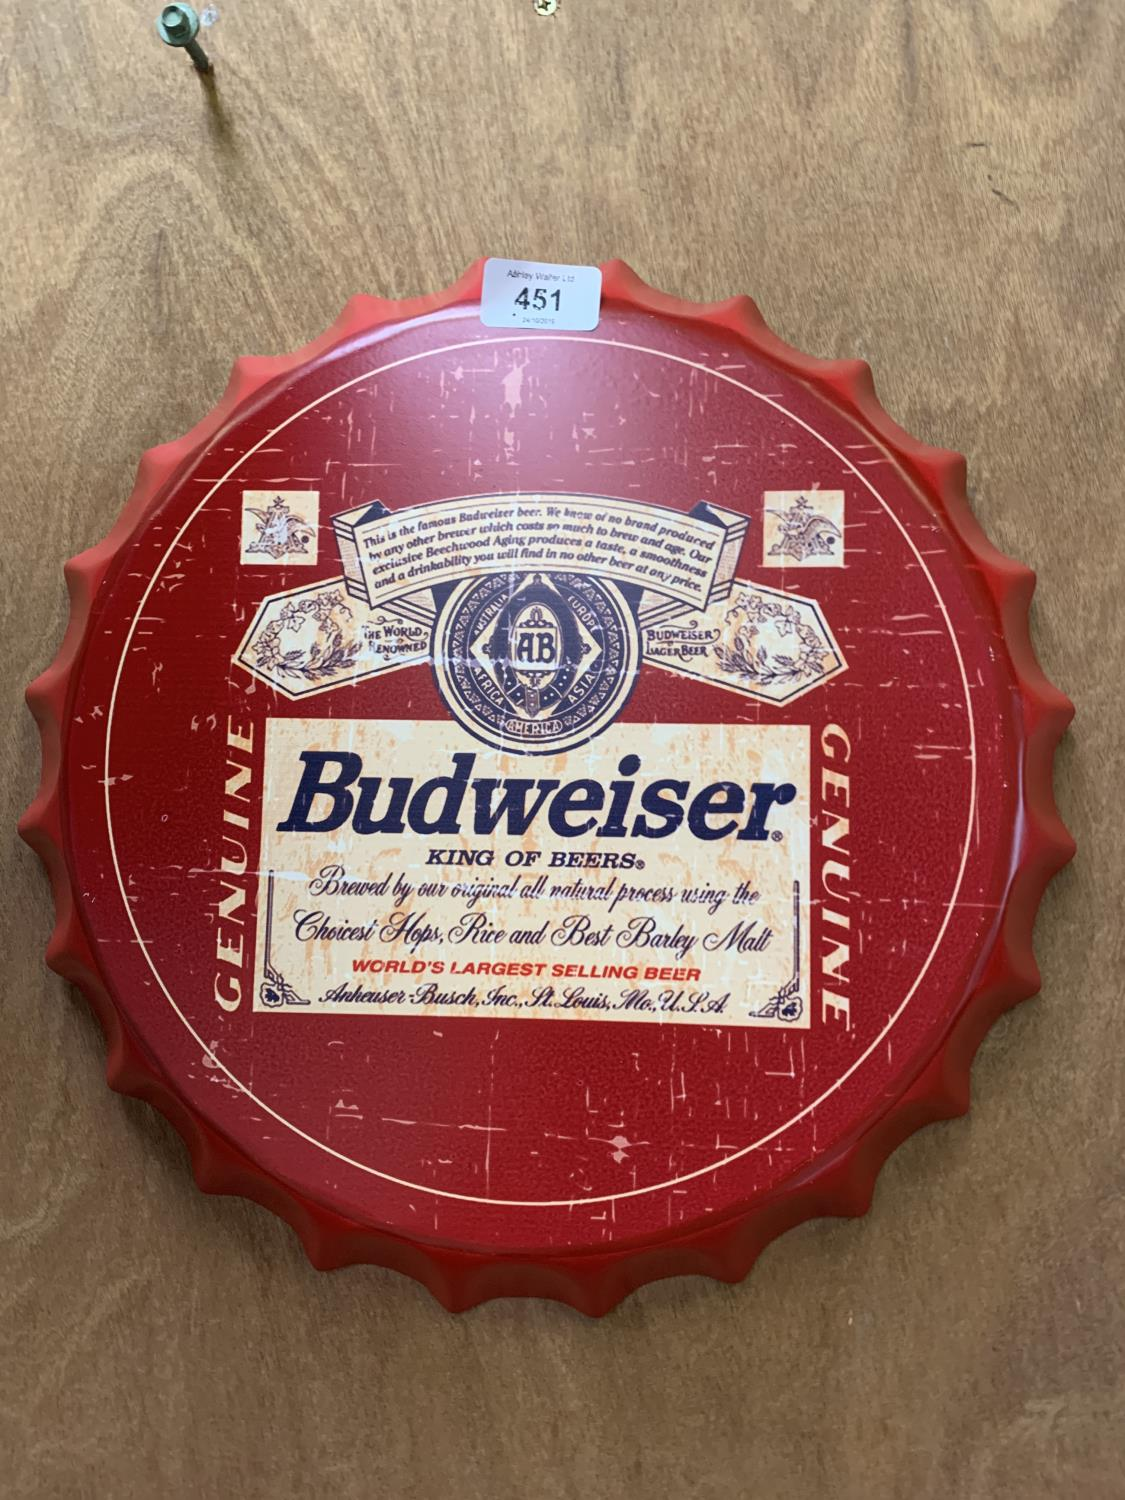 Lot 451 - A COLLECTABLE METAL BEER BOTTLE CAP 'BUDWEISER' SIGN